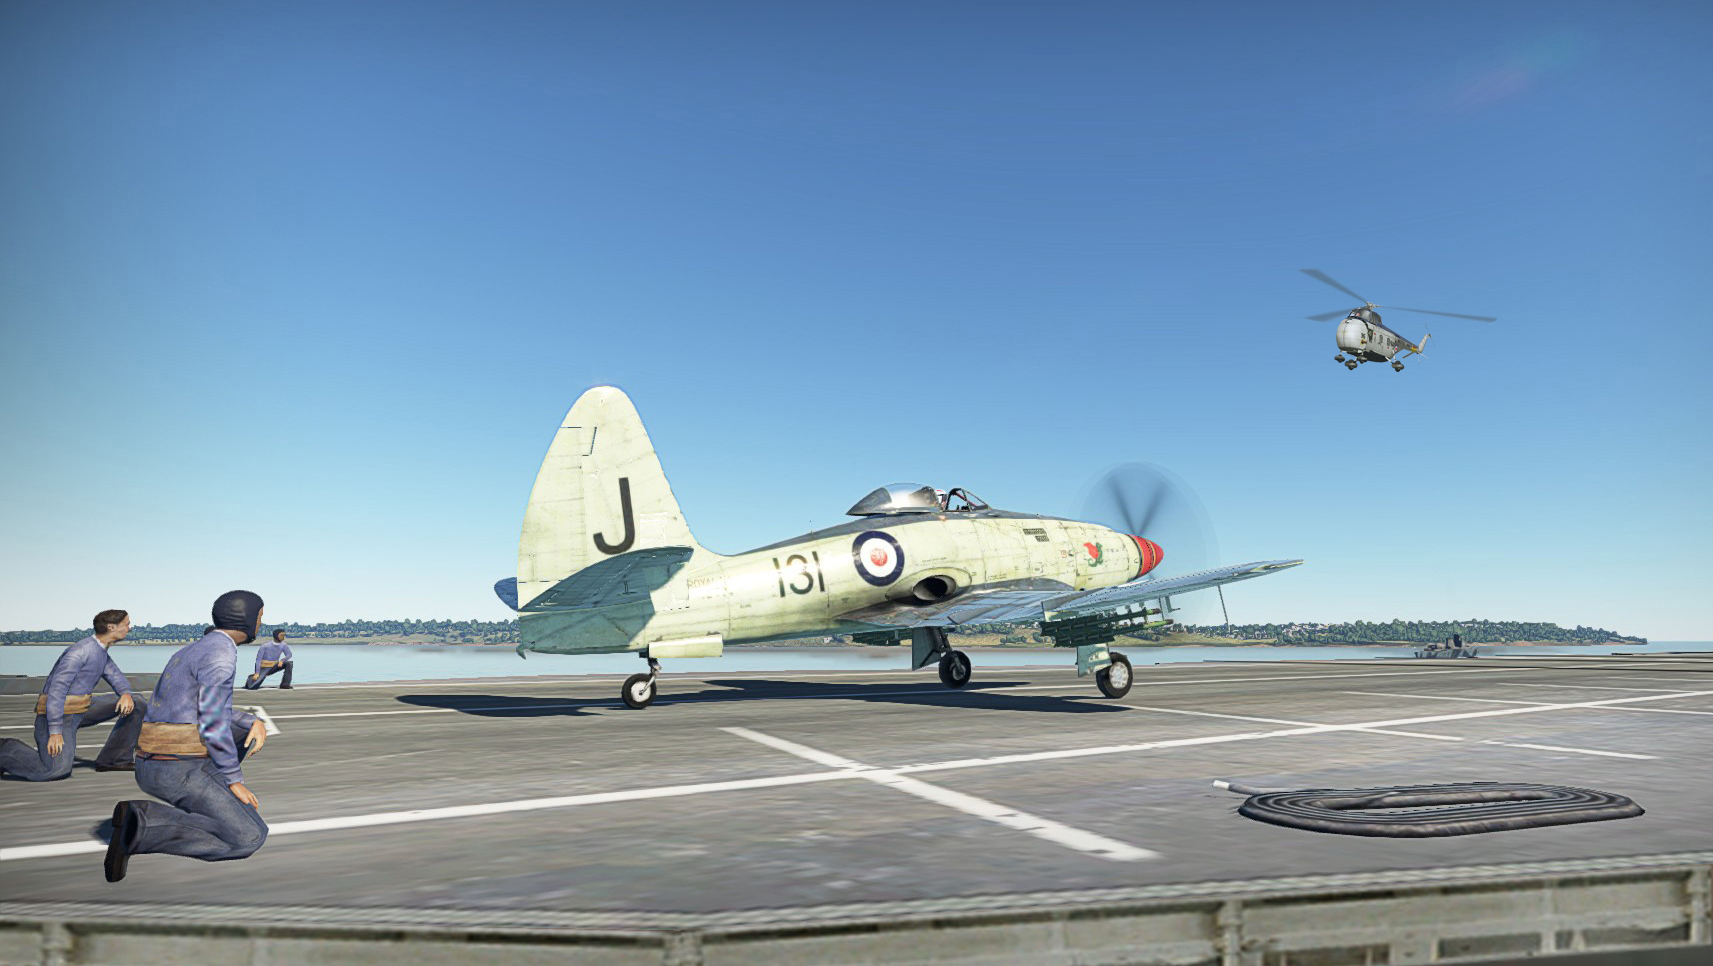 1956 Wyvern S4 on deck ready to take off